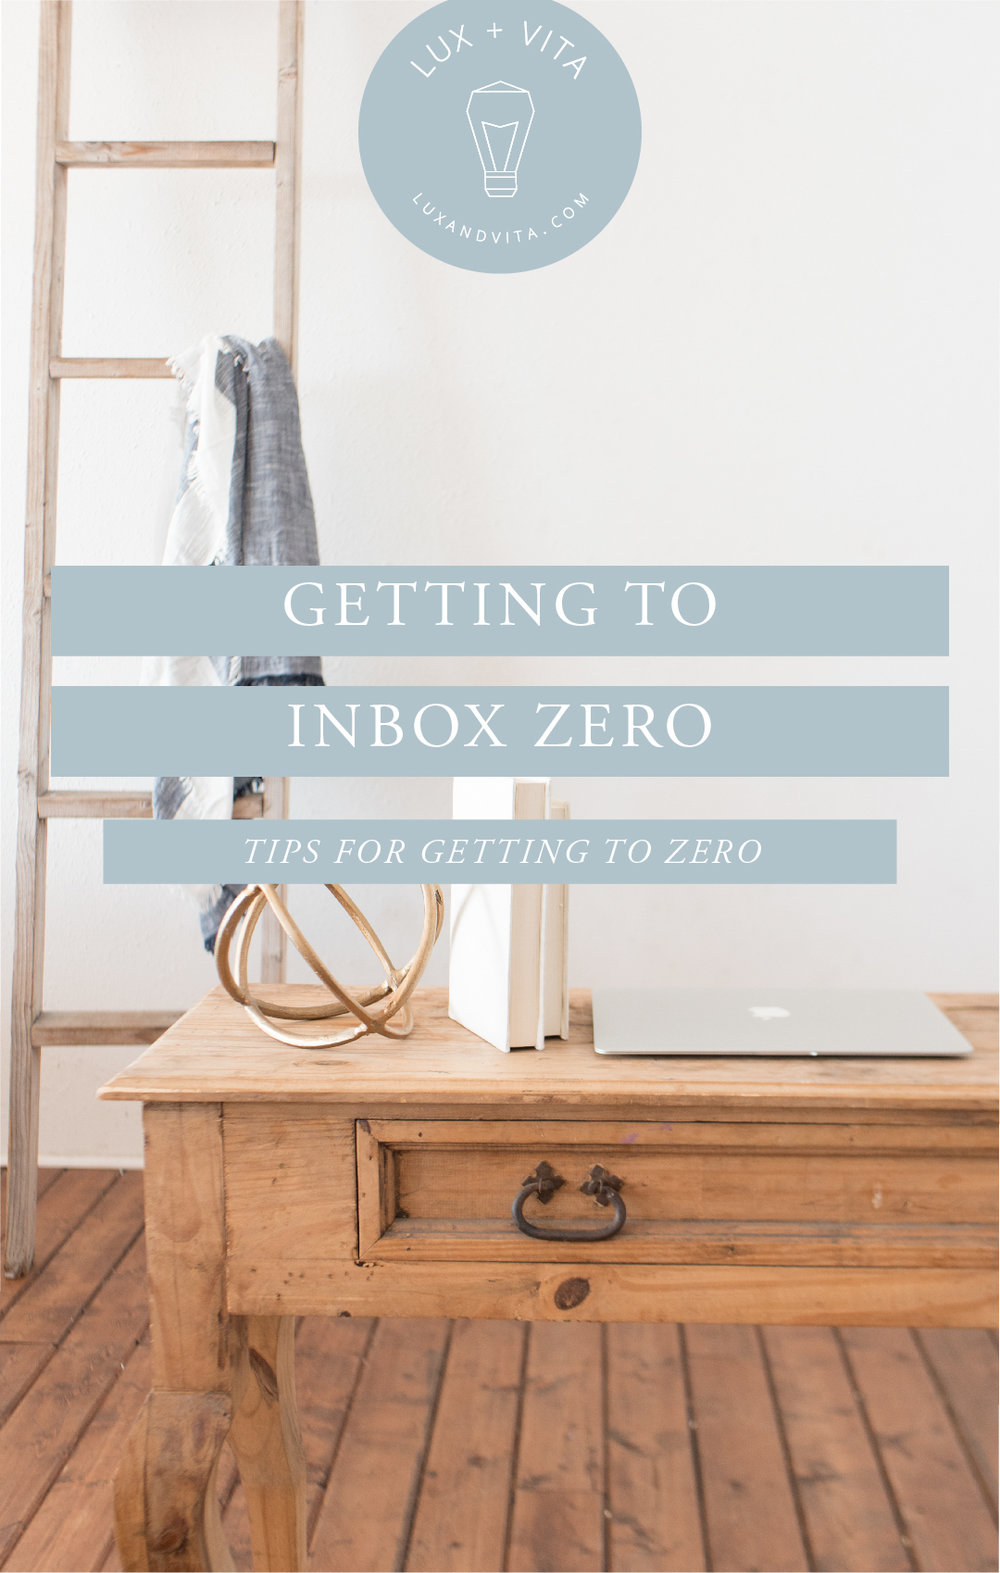 Tips for getting to and staying at inbox zero — how to manage your inbox #inboxmanagement #gmailtips #emailtips #tametheinbox #inboxzero